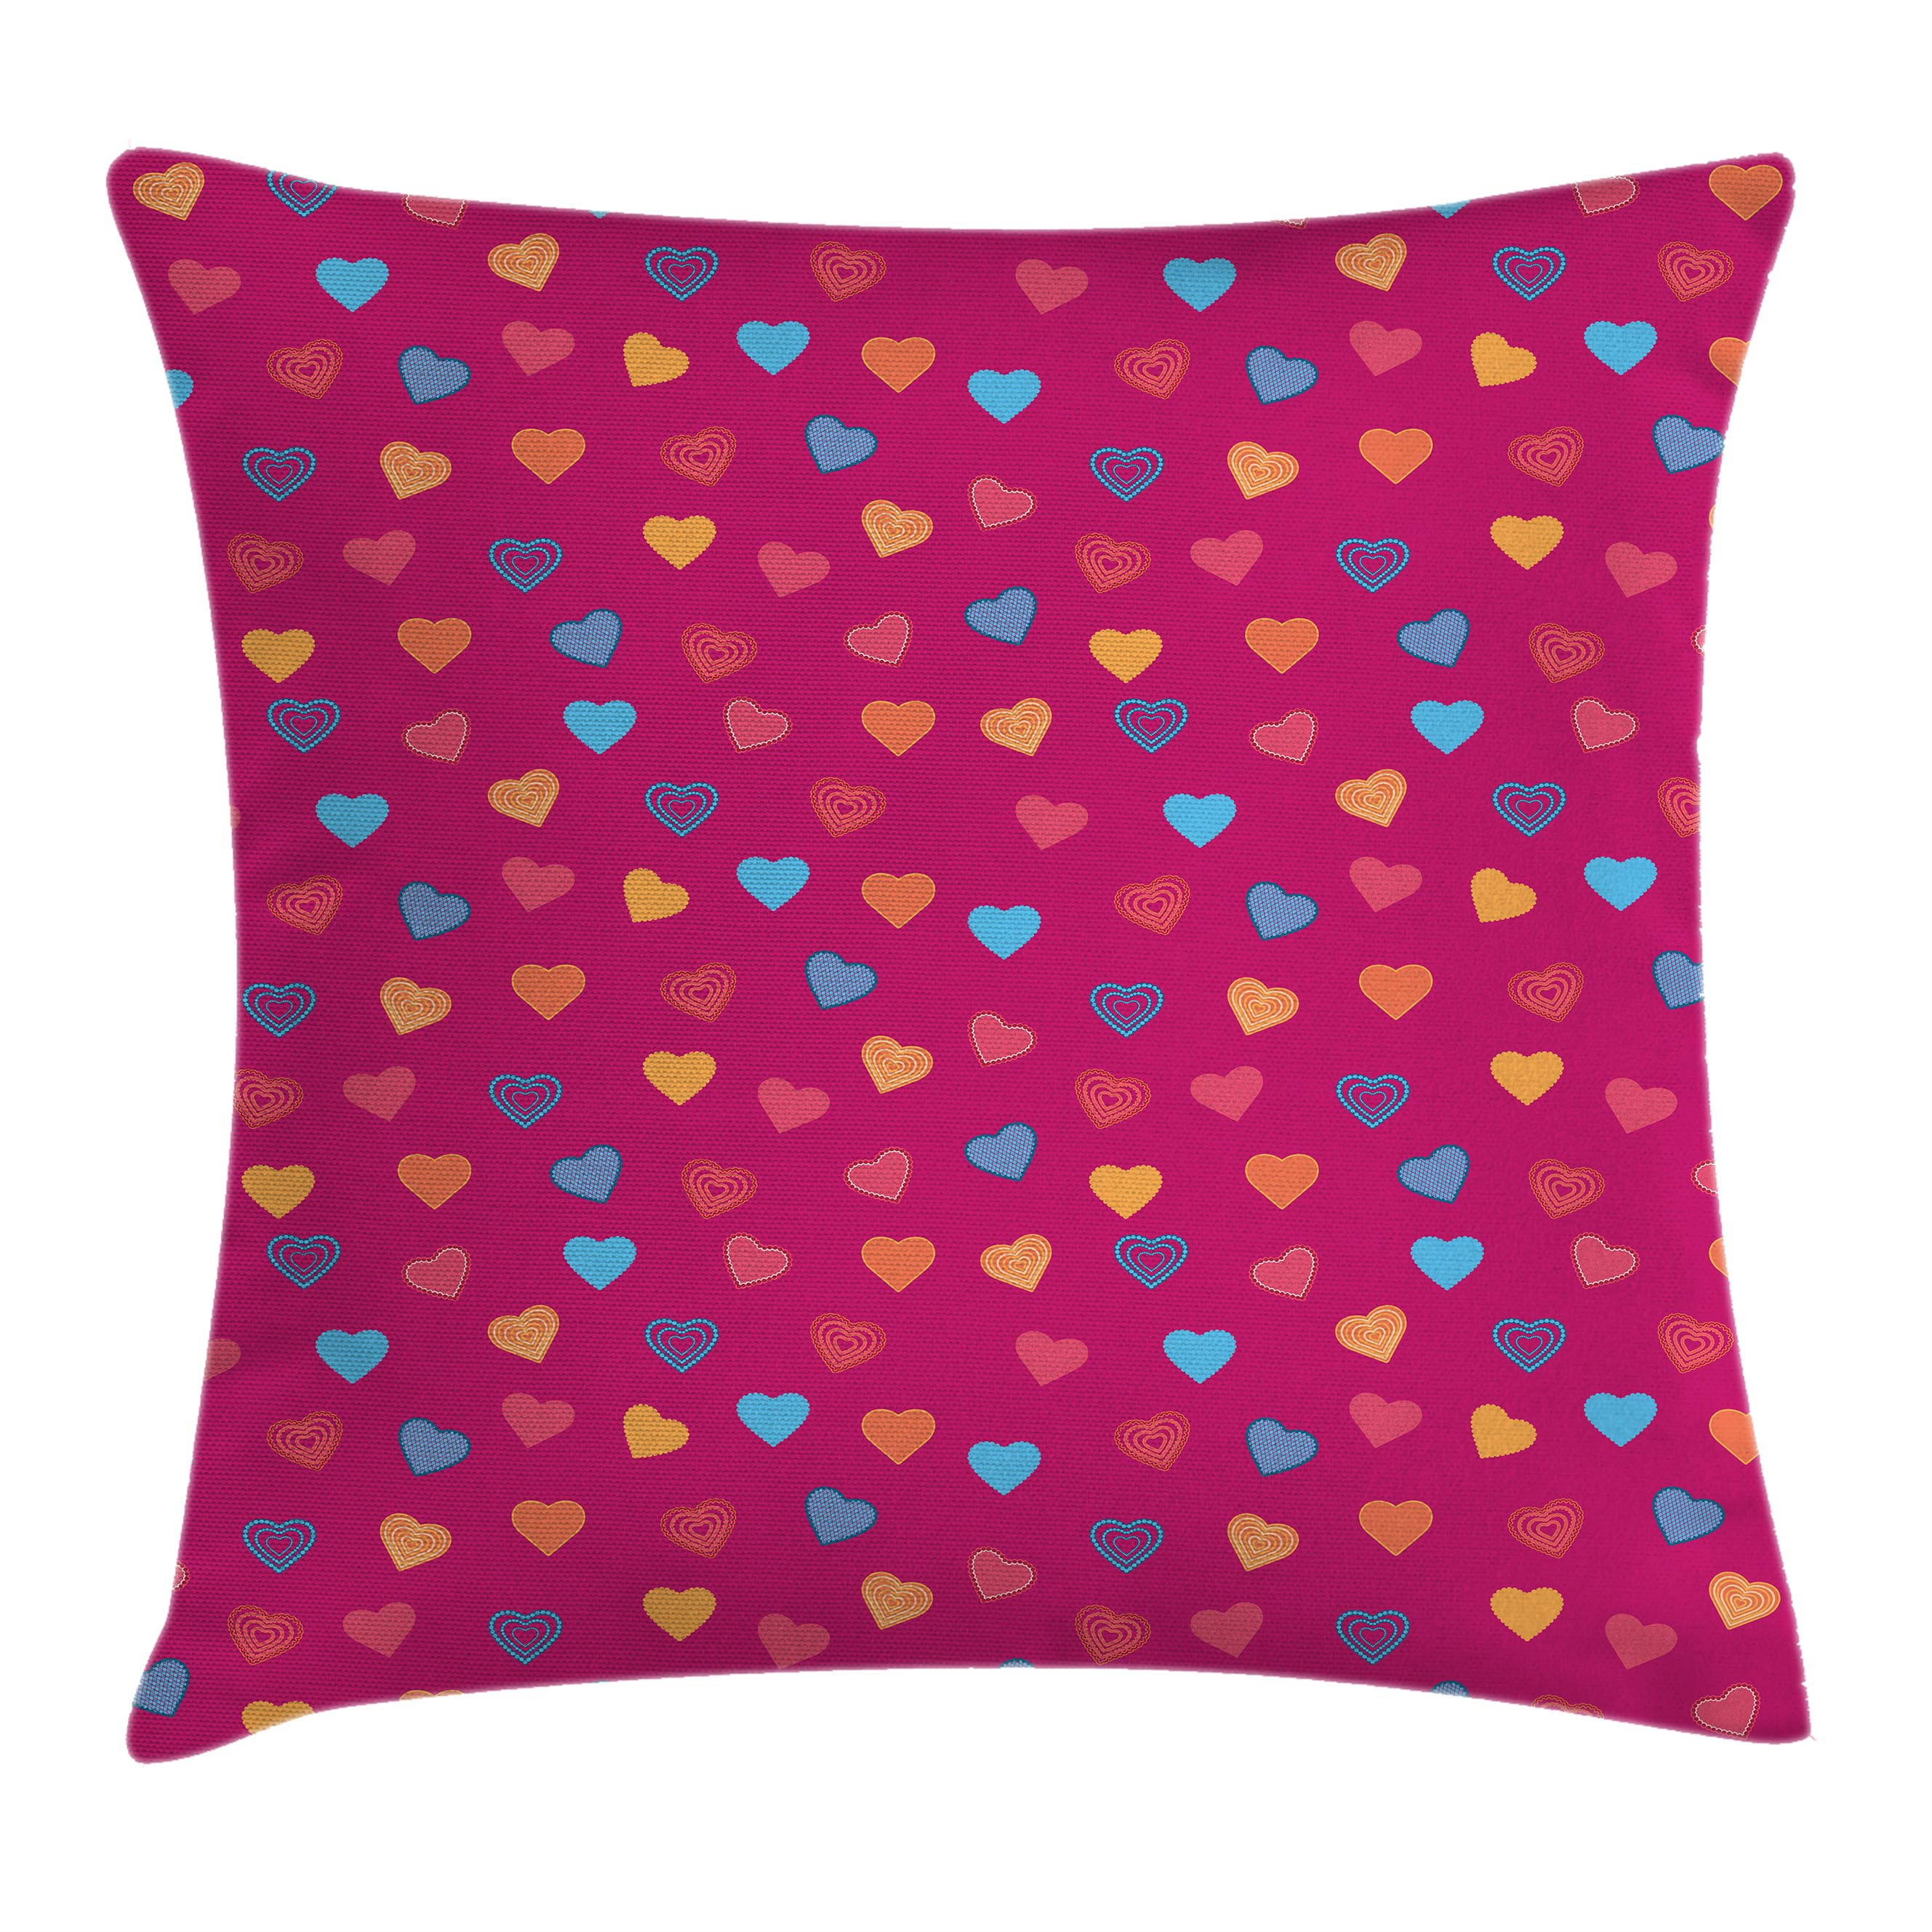 Magenta Decor Throw Pillow Cushion Cover, Cute Heart Figures Valentine Days Lovers Kids Nursery Baby Love Festive Concept, Decorative Square Accent Pillow Case, 16 X 16 Inches, Multi, by Ambesonne